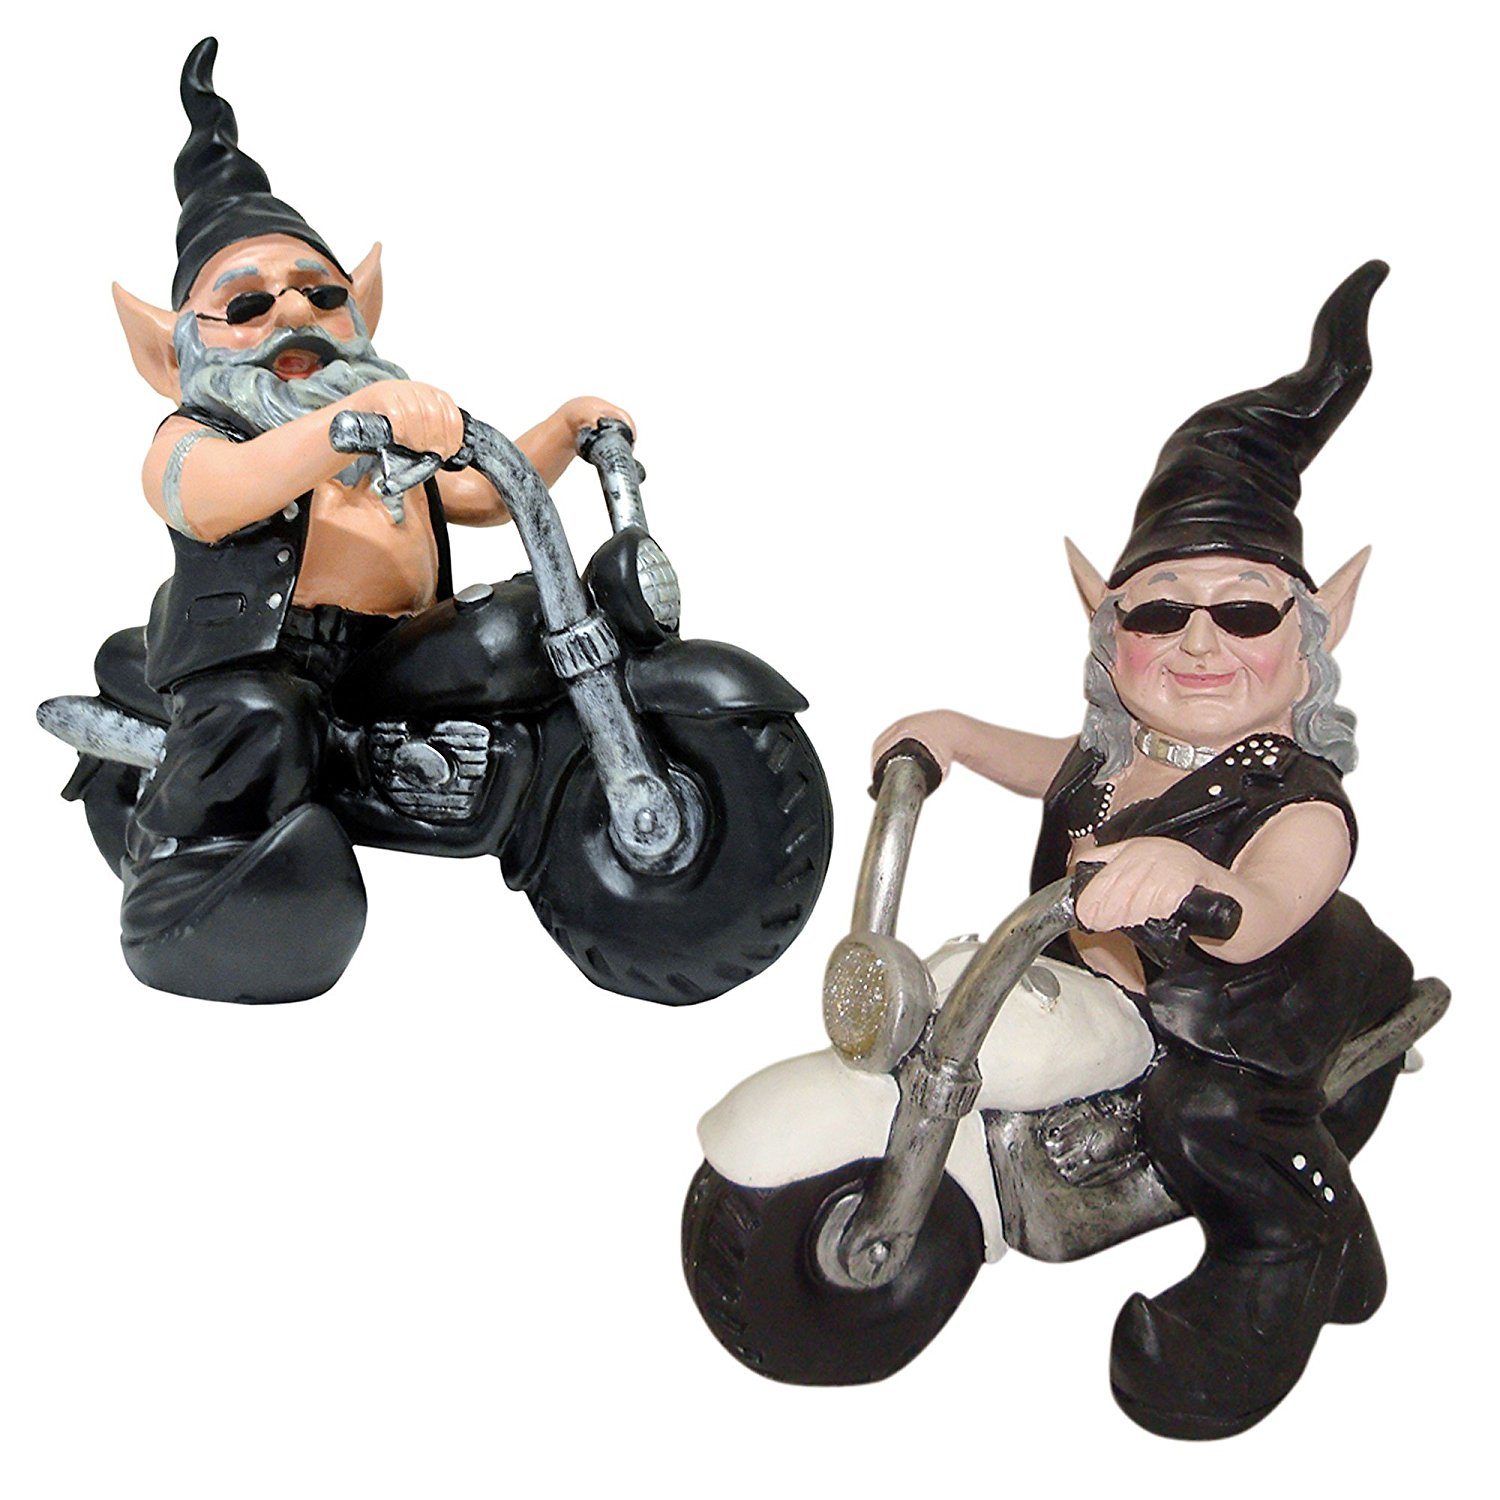 """Nowaday Gnomes Biker Dude & Babe the Biker Gnomes in Leather Motorcycle Gear Riding Black and White Hogs Home & Garden Gnome Statue 12"""" H"""